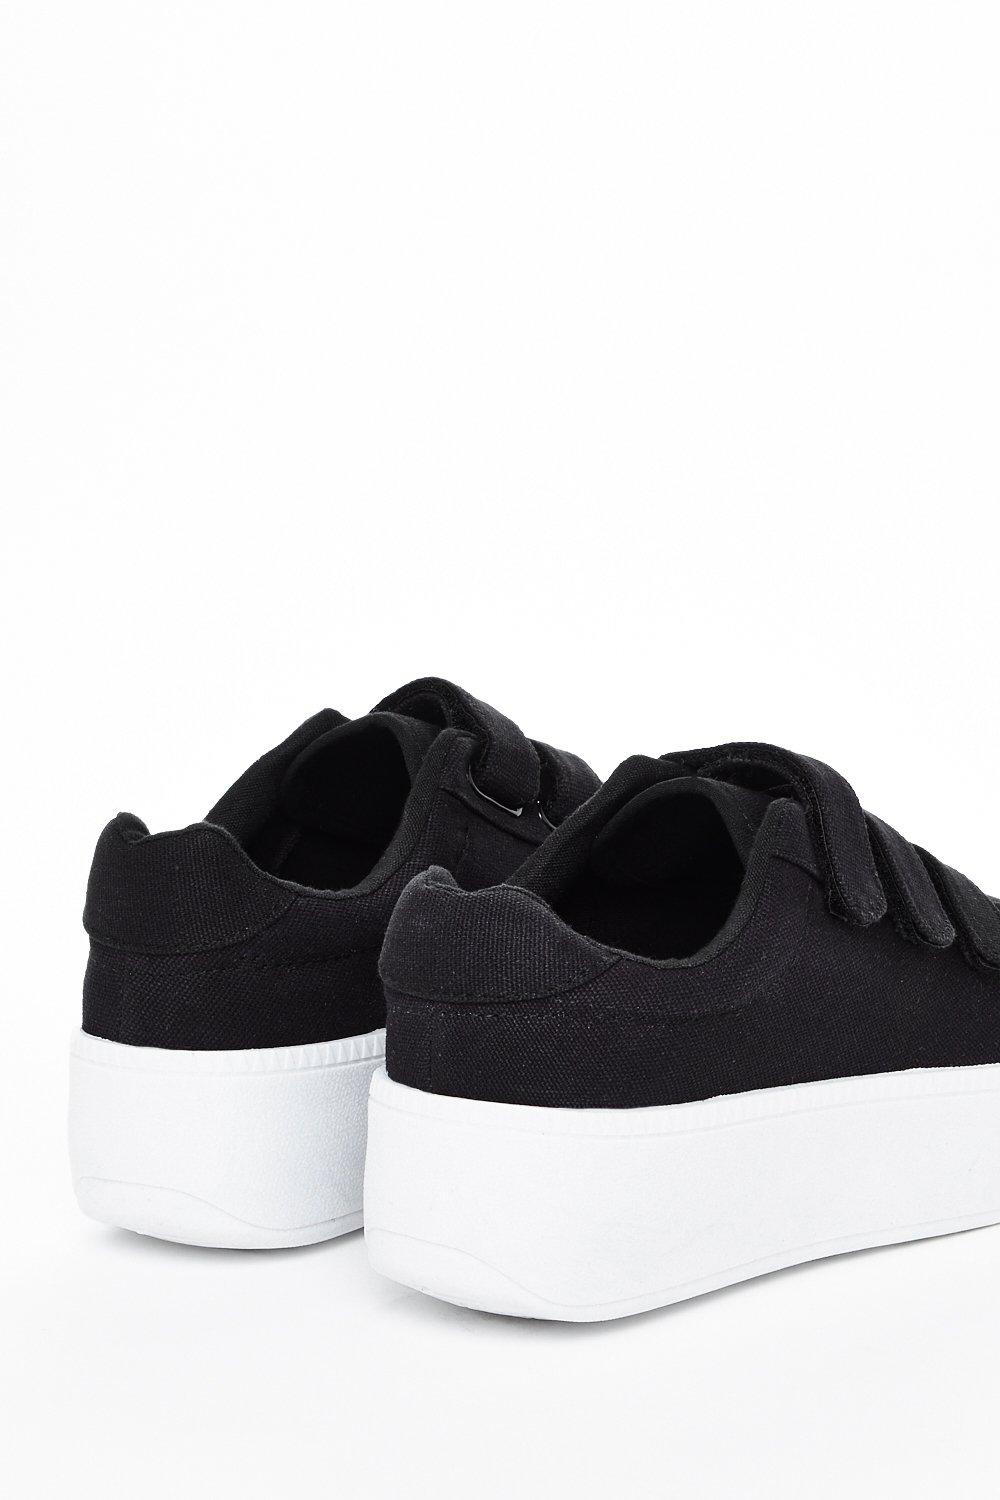 Get Strappy Platform Sneaker free shipping release dates cheap 2014 new discount authentic online MWWCdjge